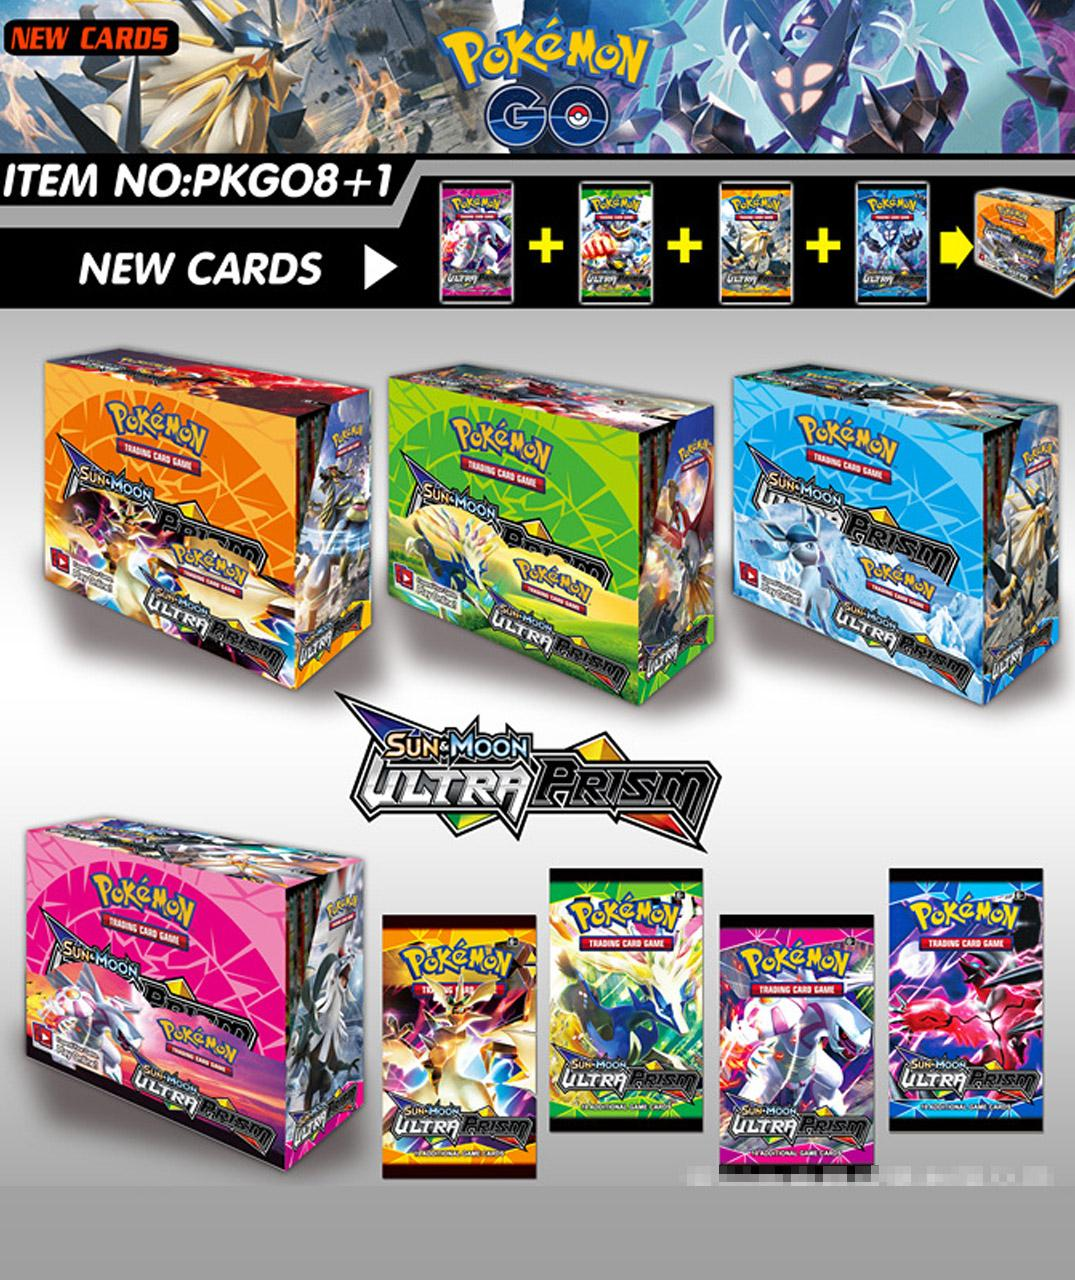 324pcs TAKARA TOMY Pet Pokemon Cards  High-end Gift Box Pokemon Cards   The Toy Of  Children